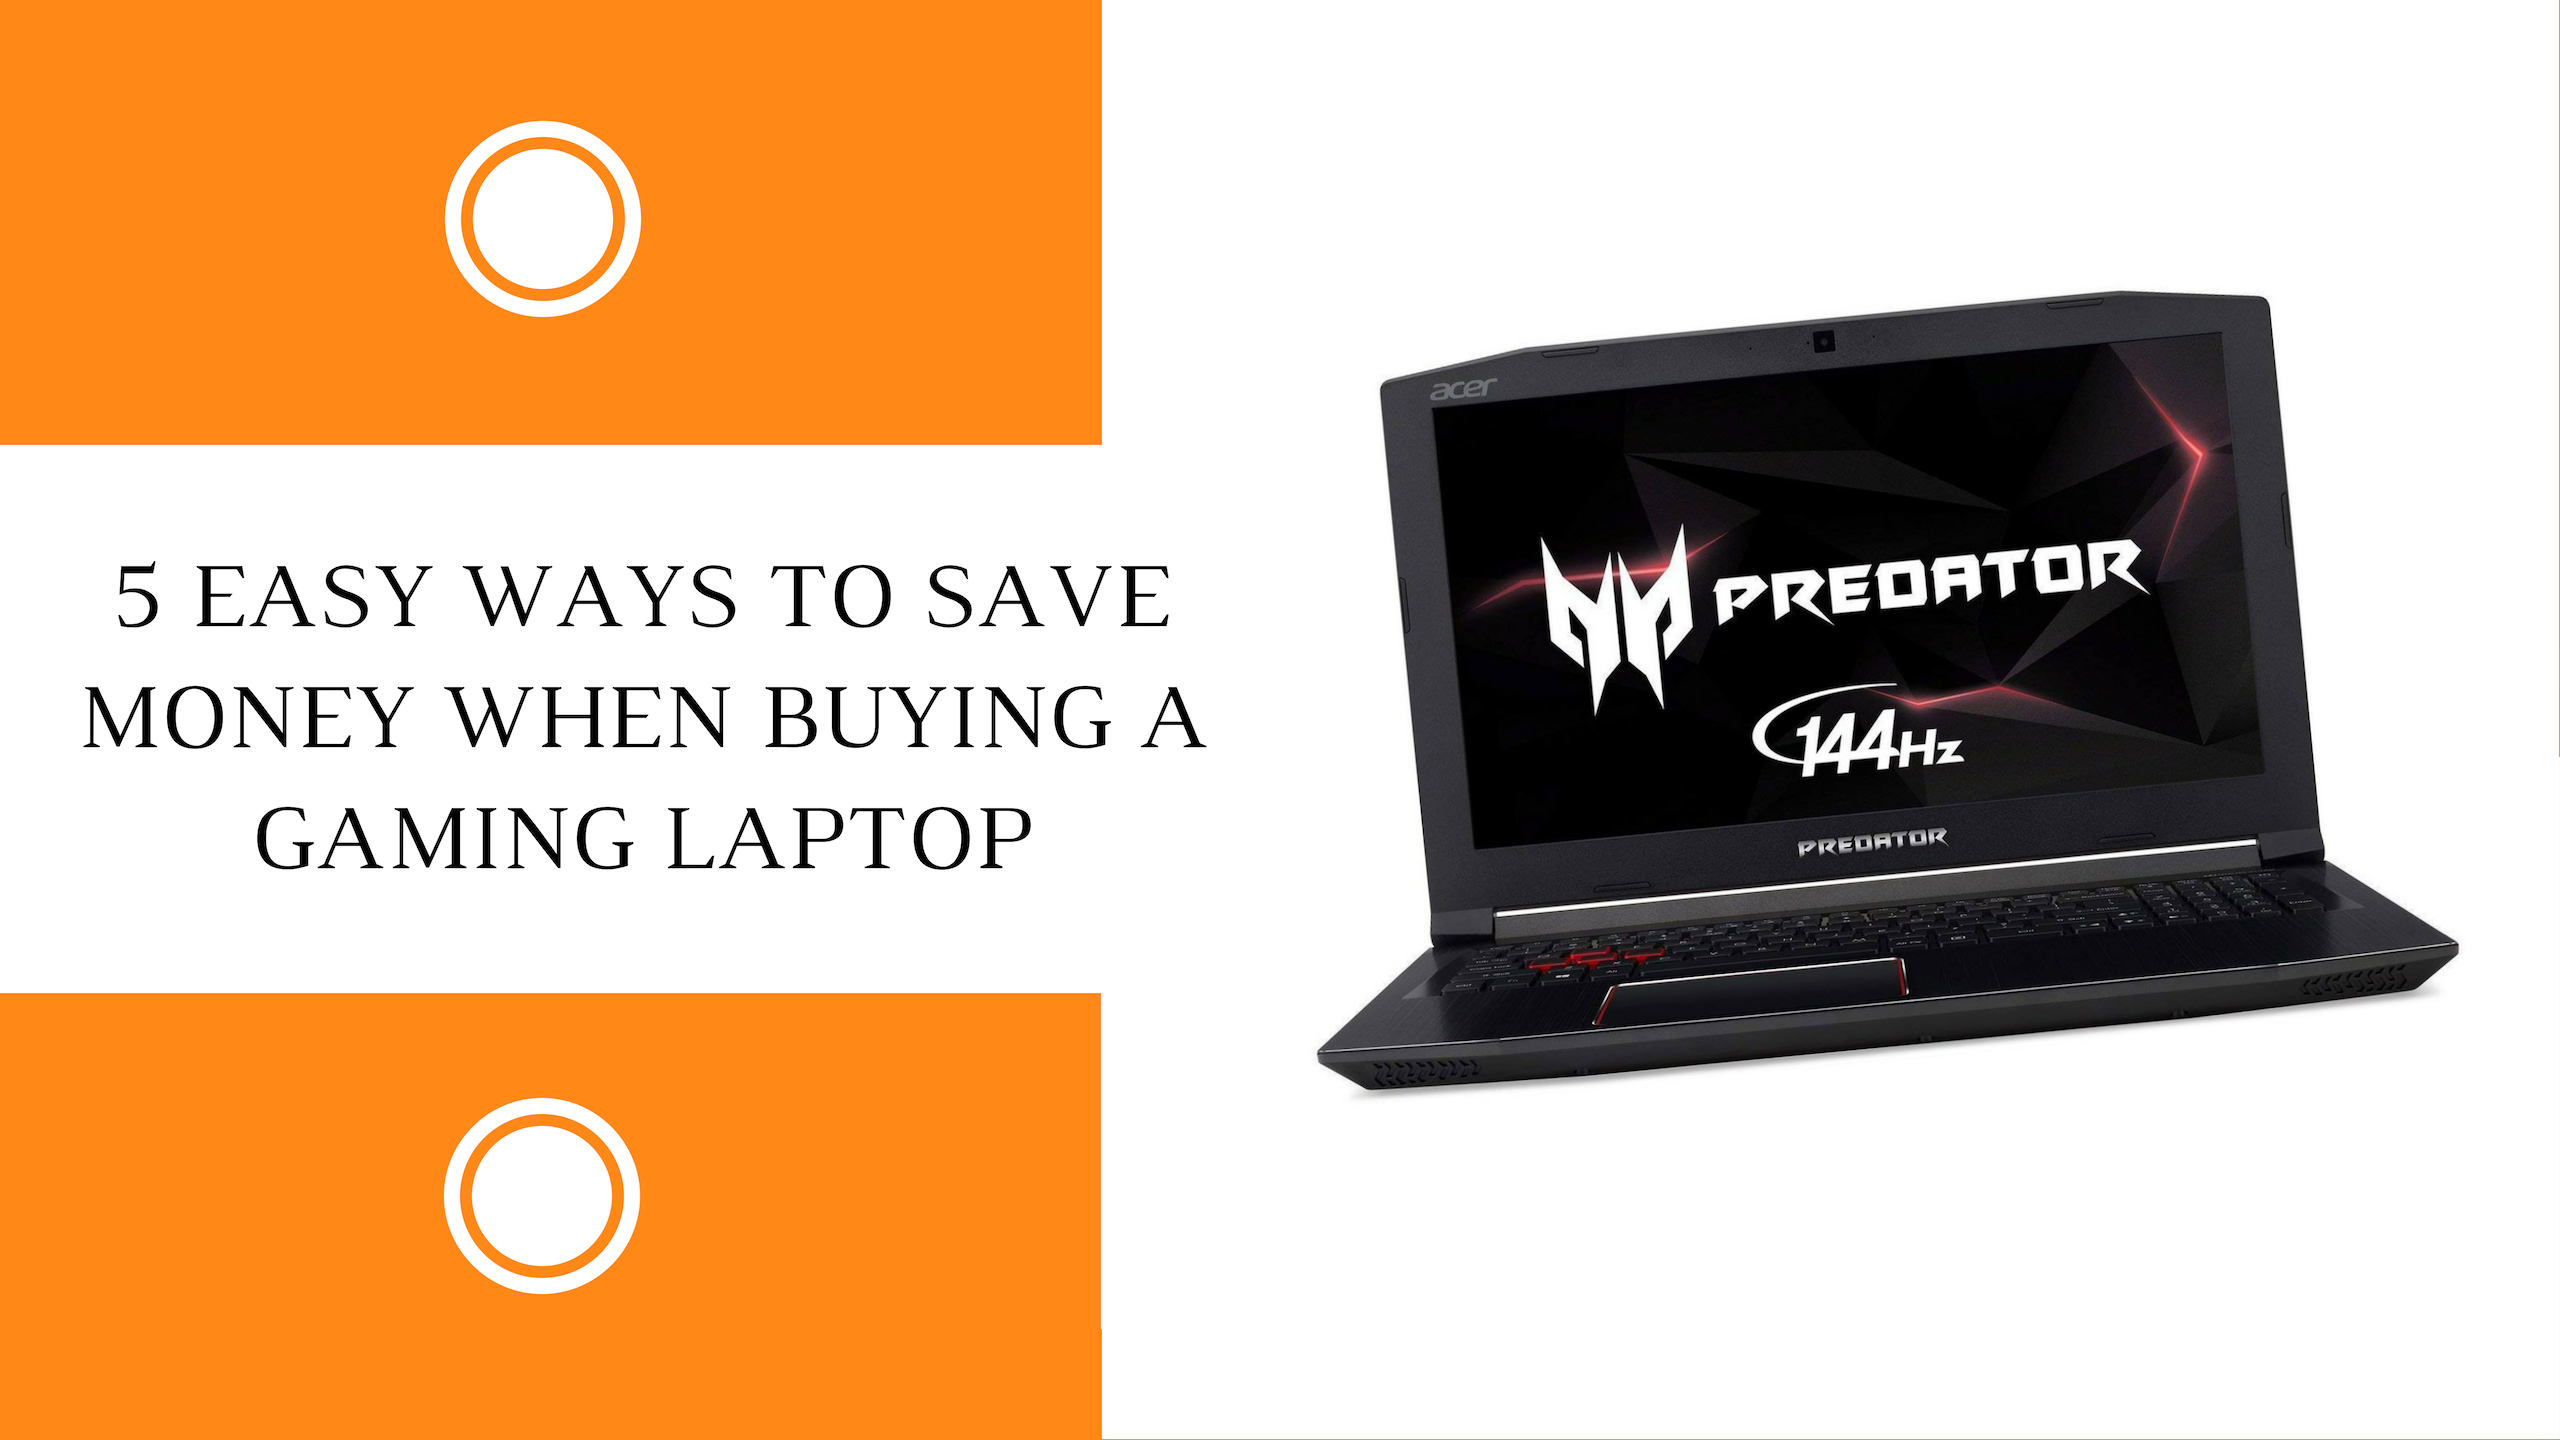 https://www.techicy.com/5-easy-ways-to-save-money-when-buying-a-gaming-laptop.html